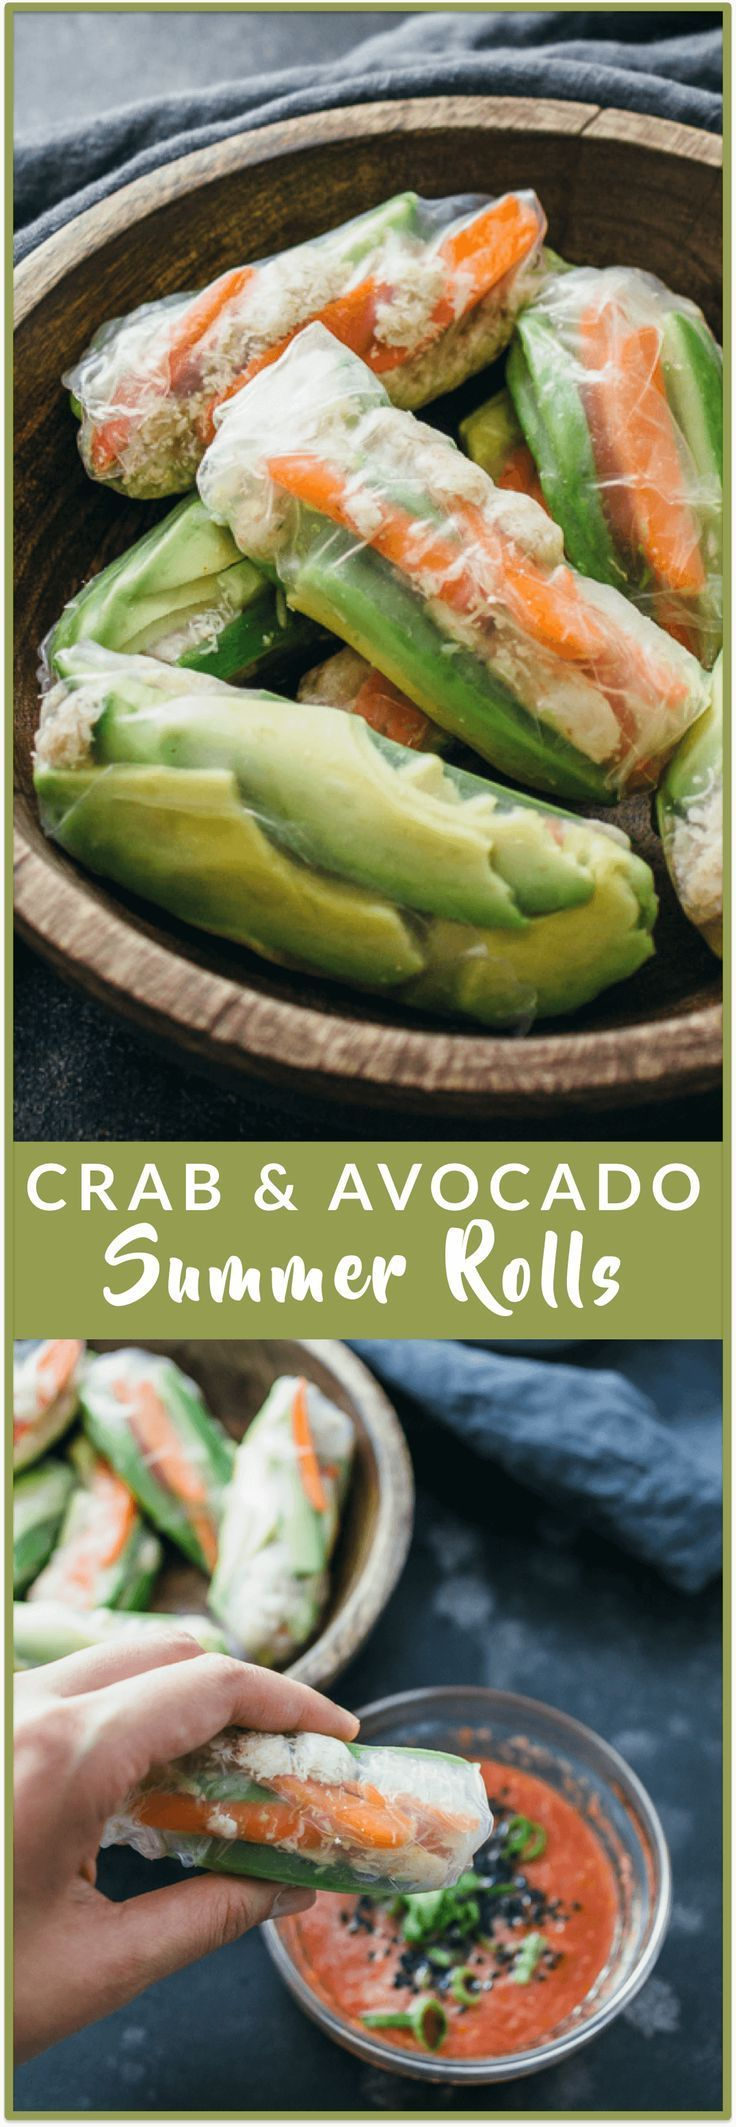 Crab and avocado summer rolls - Bite into these crab and avocado summer rolls! This Vietnamese and Thai inspired recipe has crab meat, sliced avocado, cucumber, and carrots wrapped together in a summer roll with a spicy red dipping sauce. Its an easy and